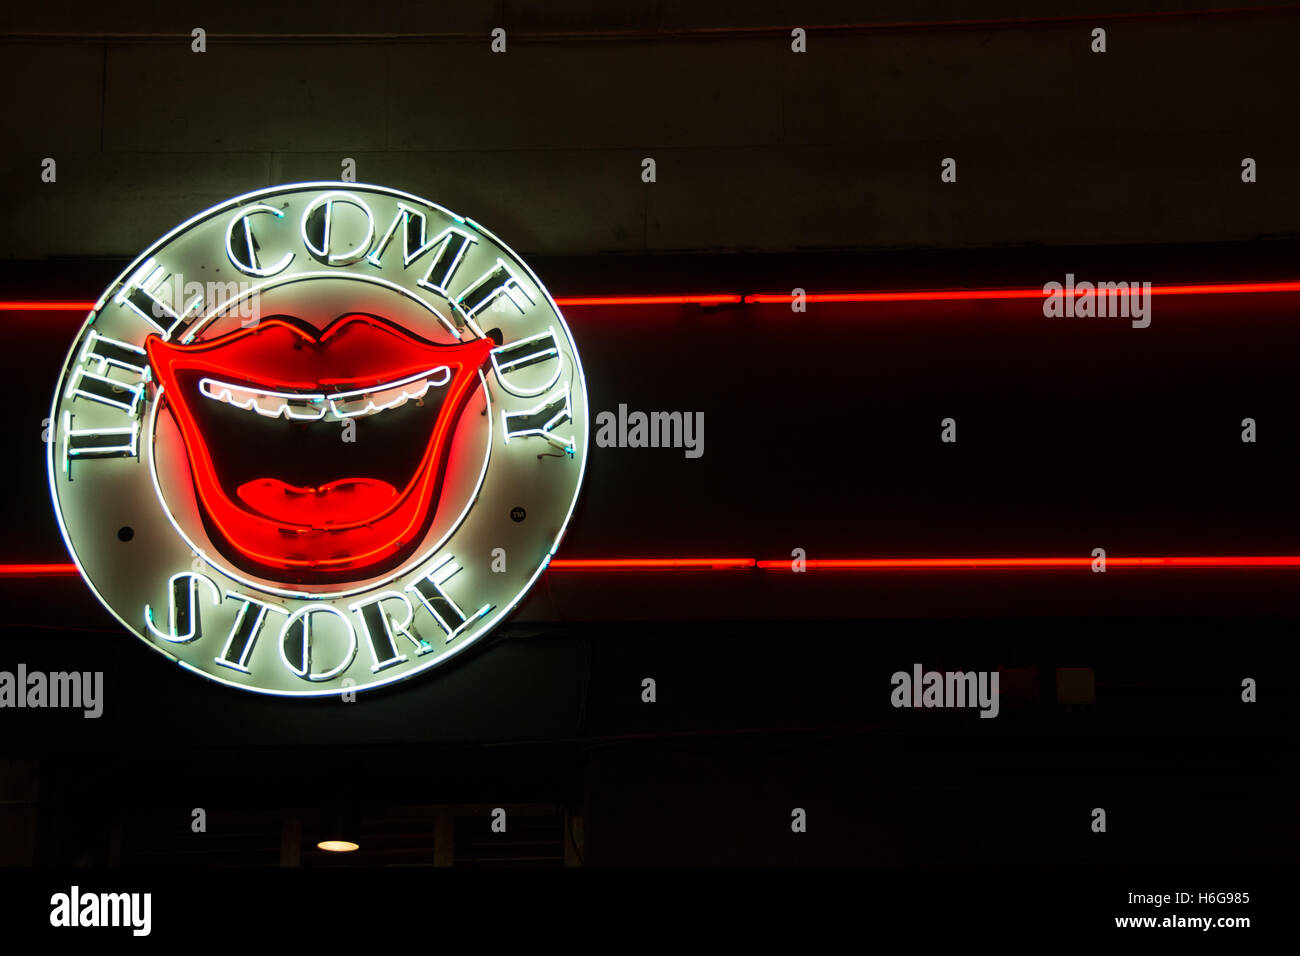 A neon sign outside the Comedy Store in London's West End, UK Stock Photo